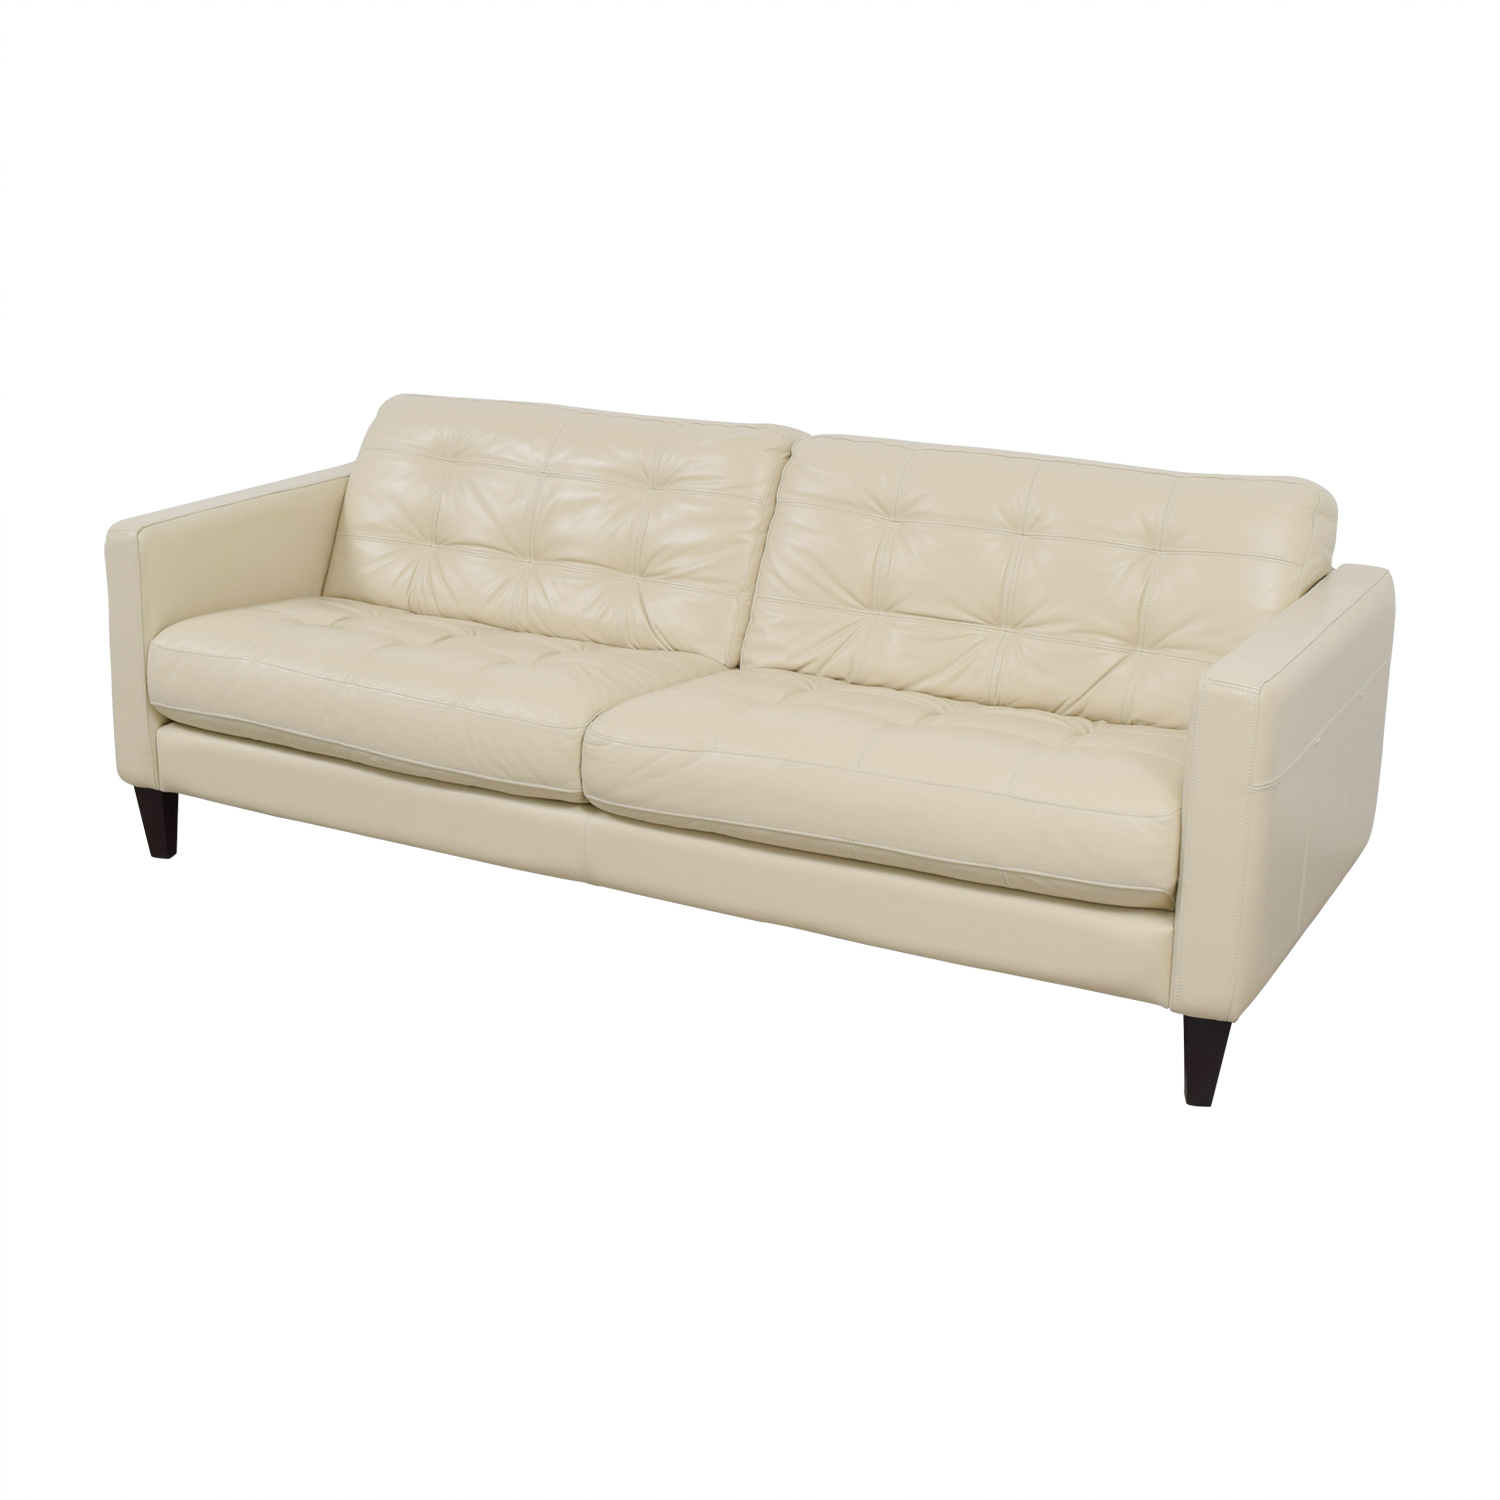 48 Off Macy S Macy S White Leather Tufted Sofa Sofas